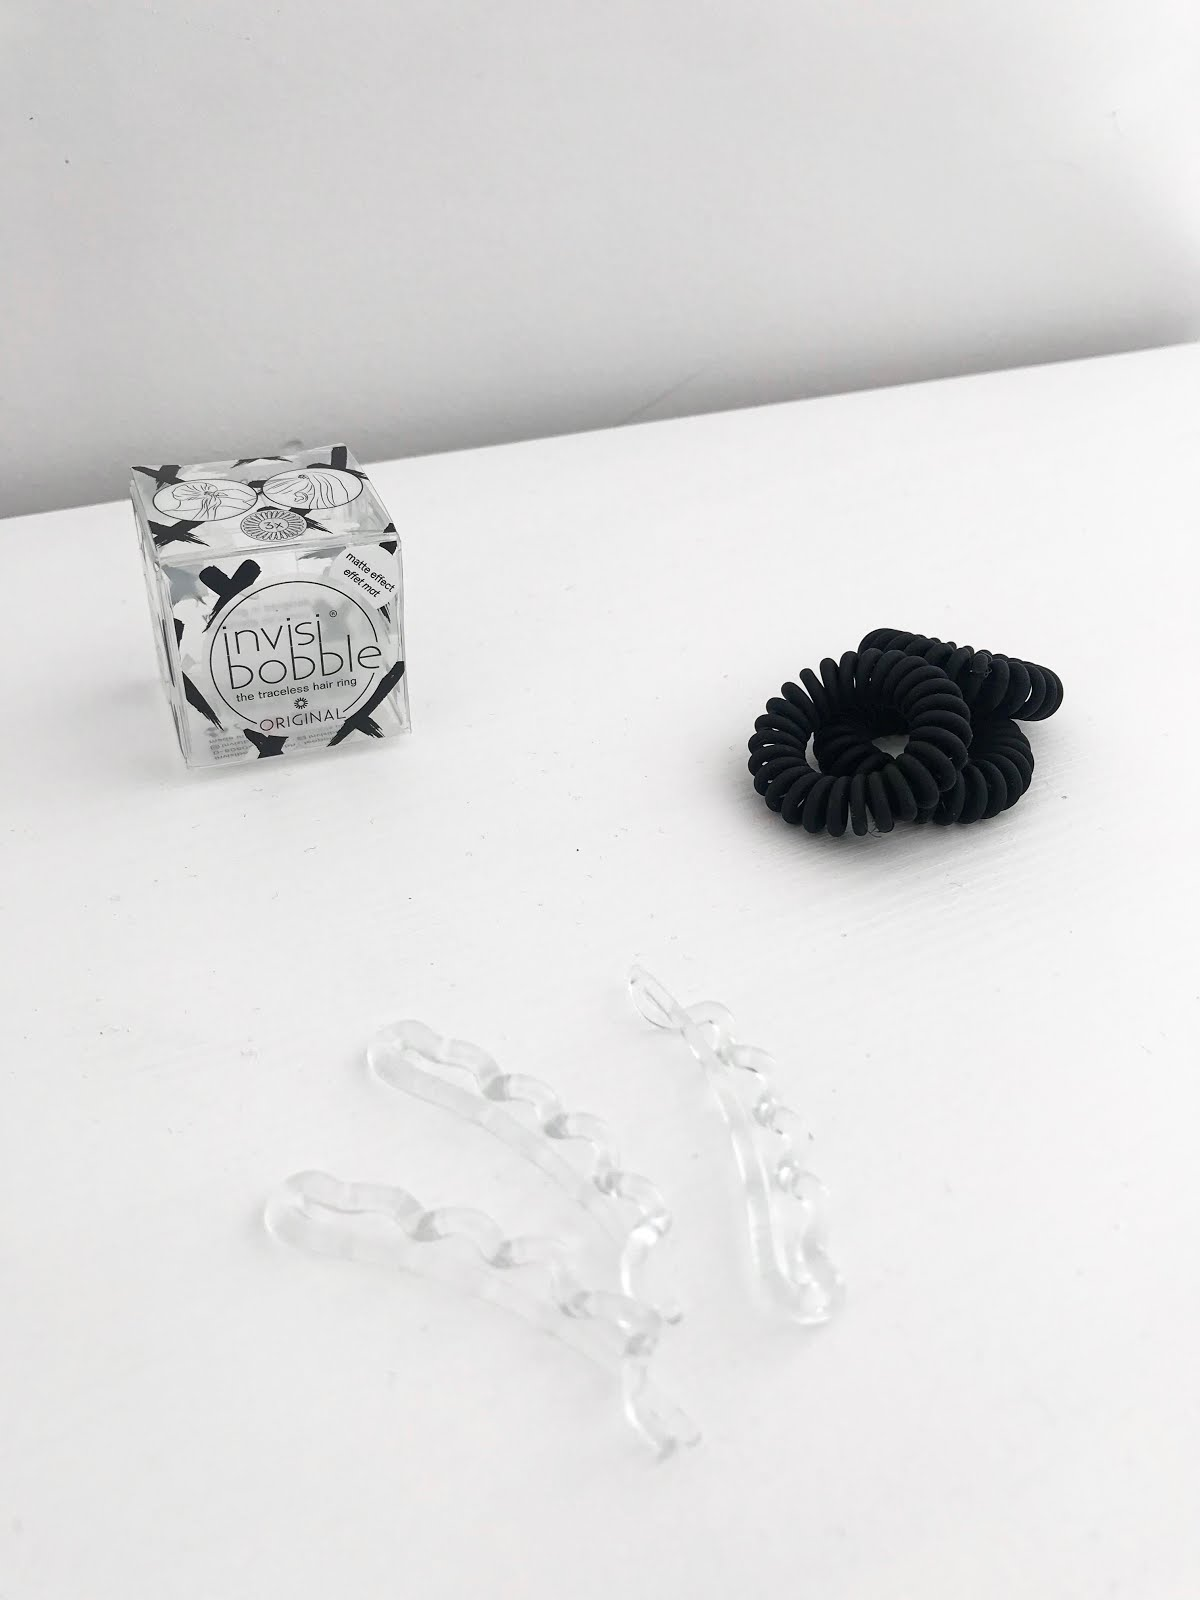 invisibobble original, hair tie, matt black, wavers, crystal clear, review, ici paris xl